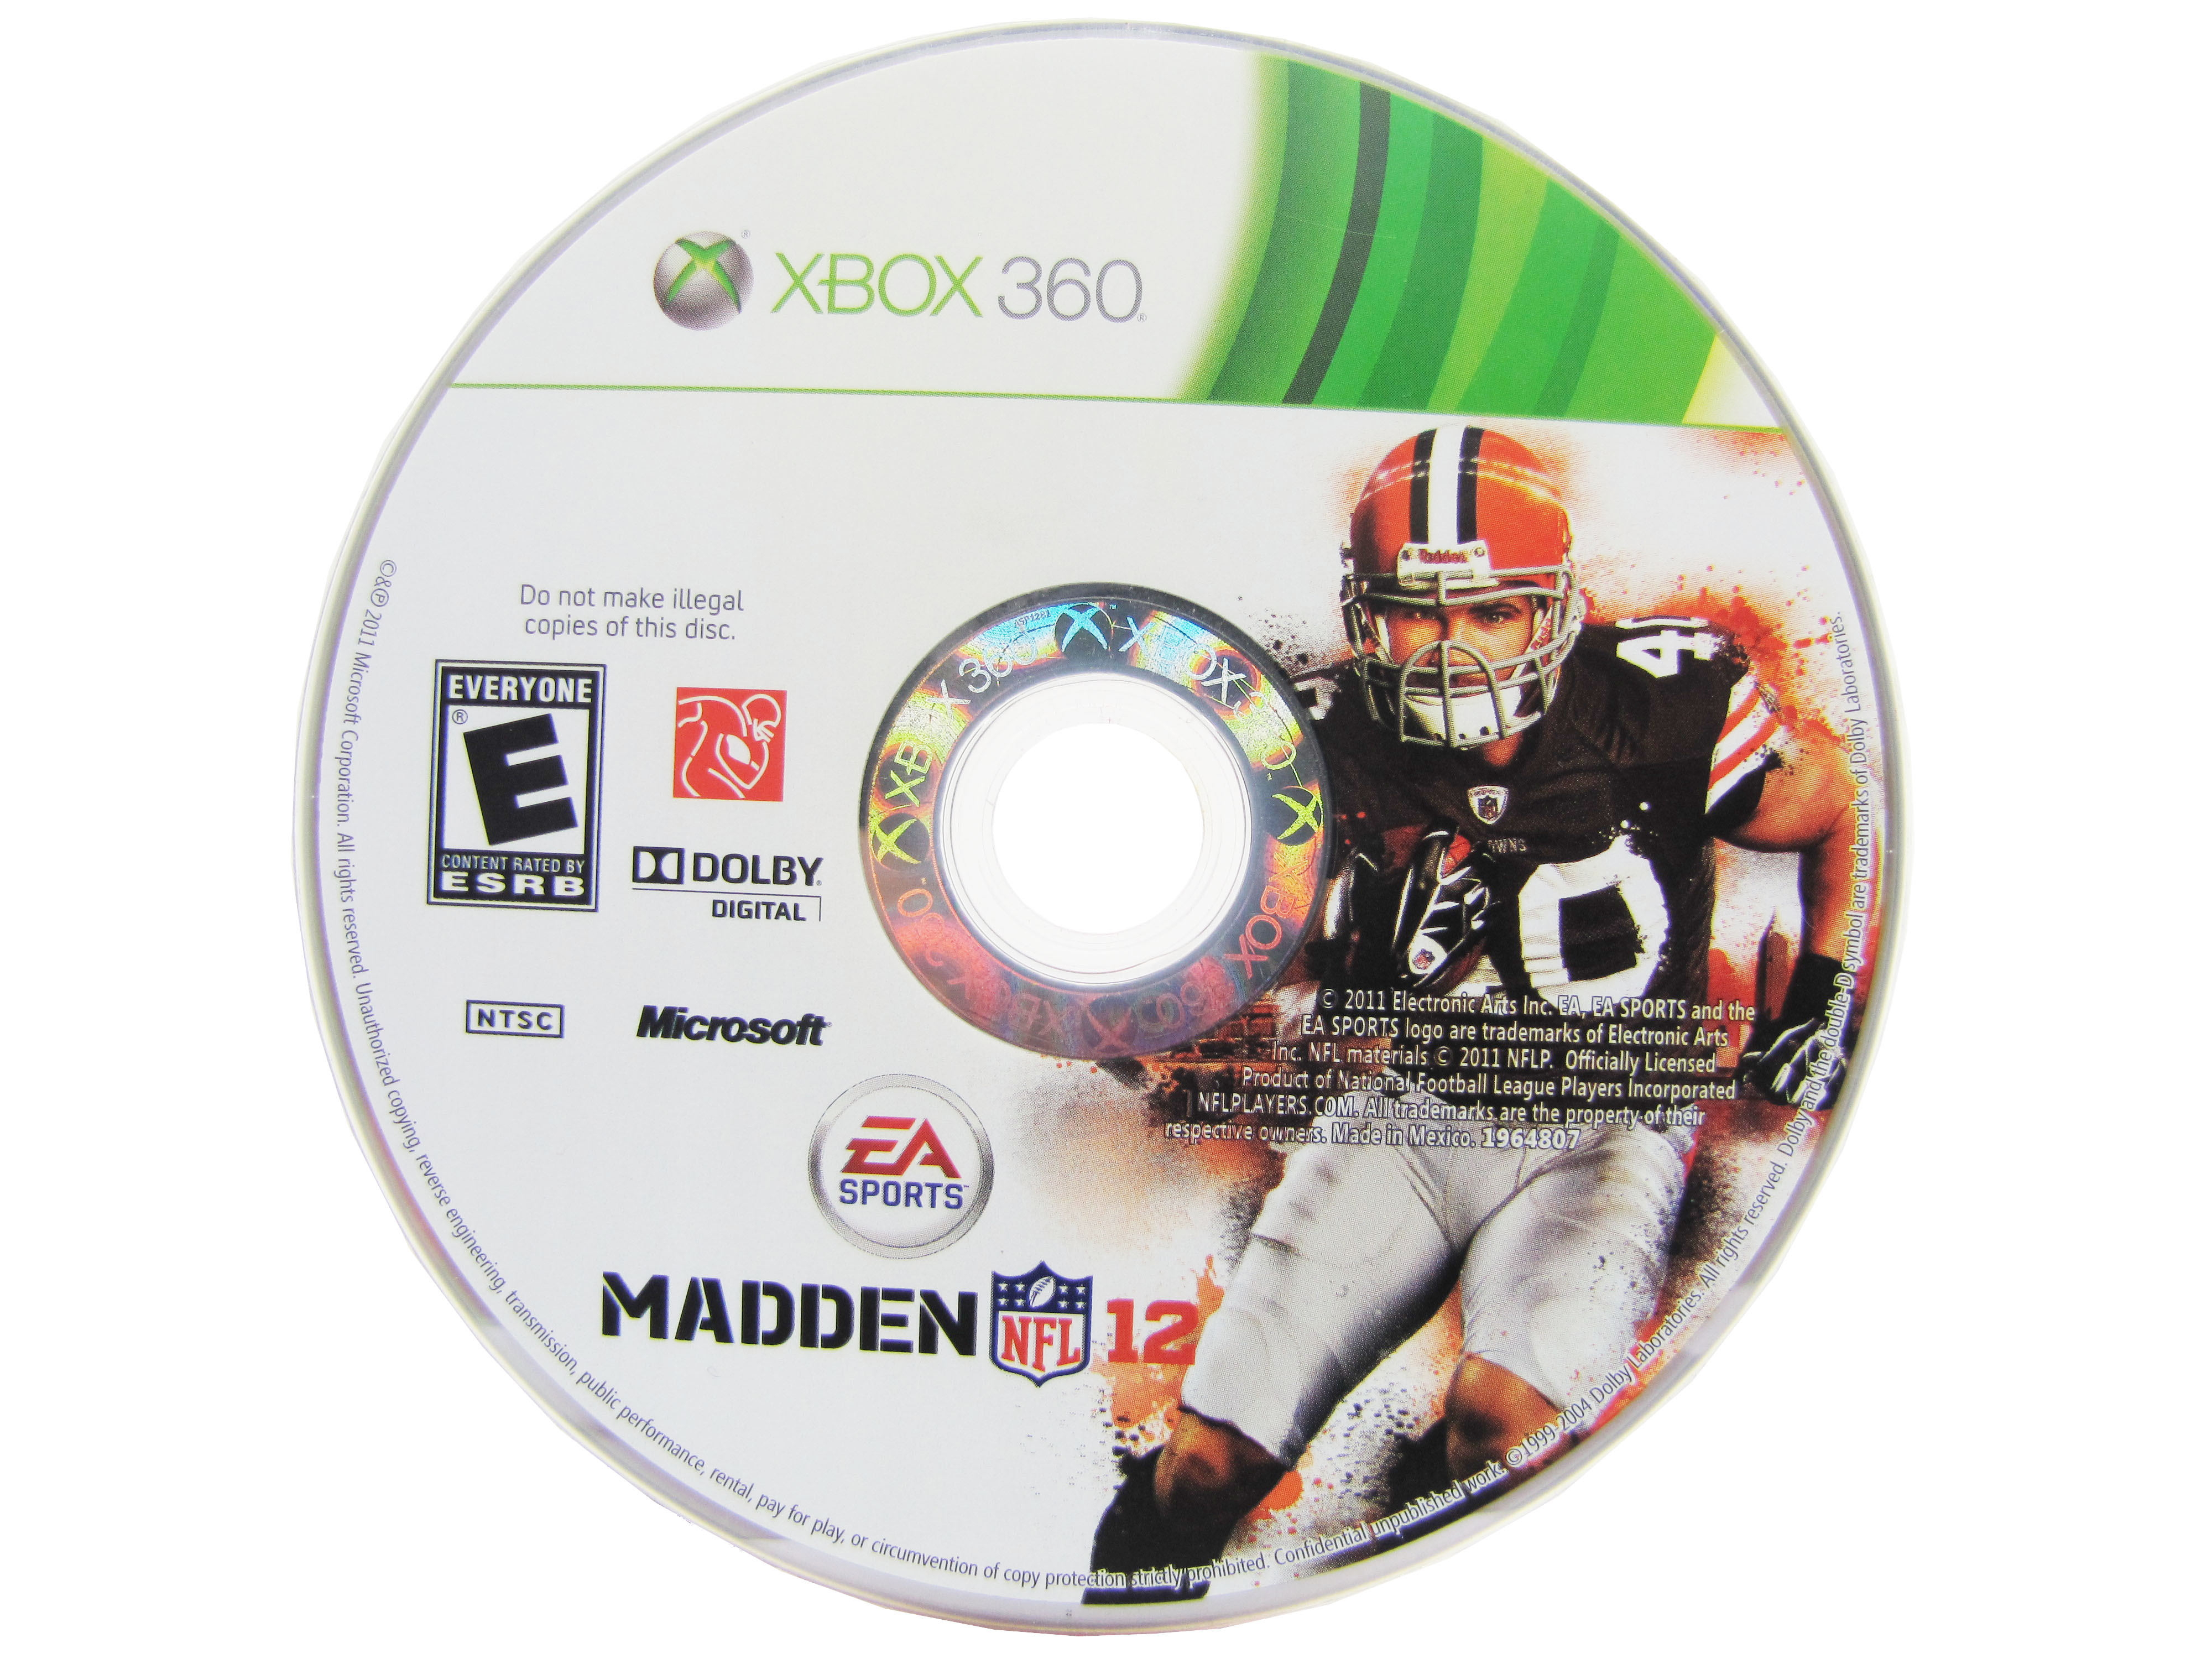 XBOX 360 Madden NFL '12 Disc Only - 2011